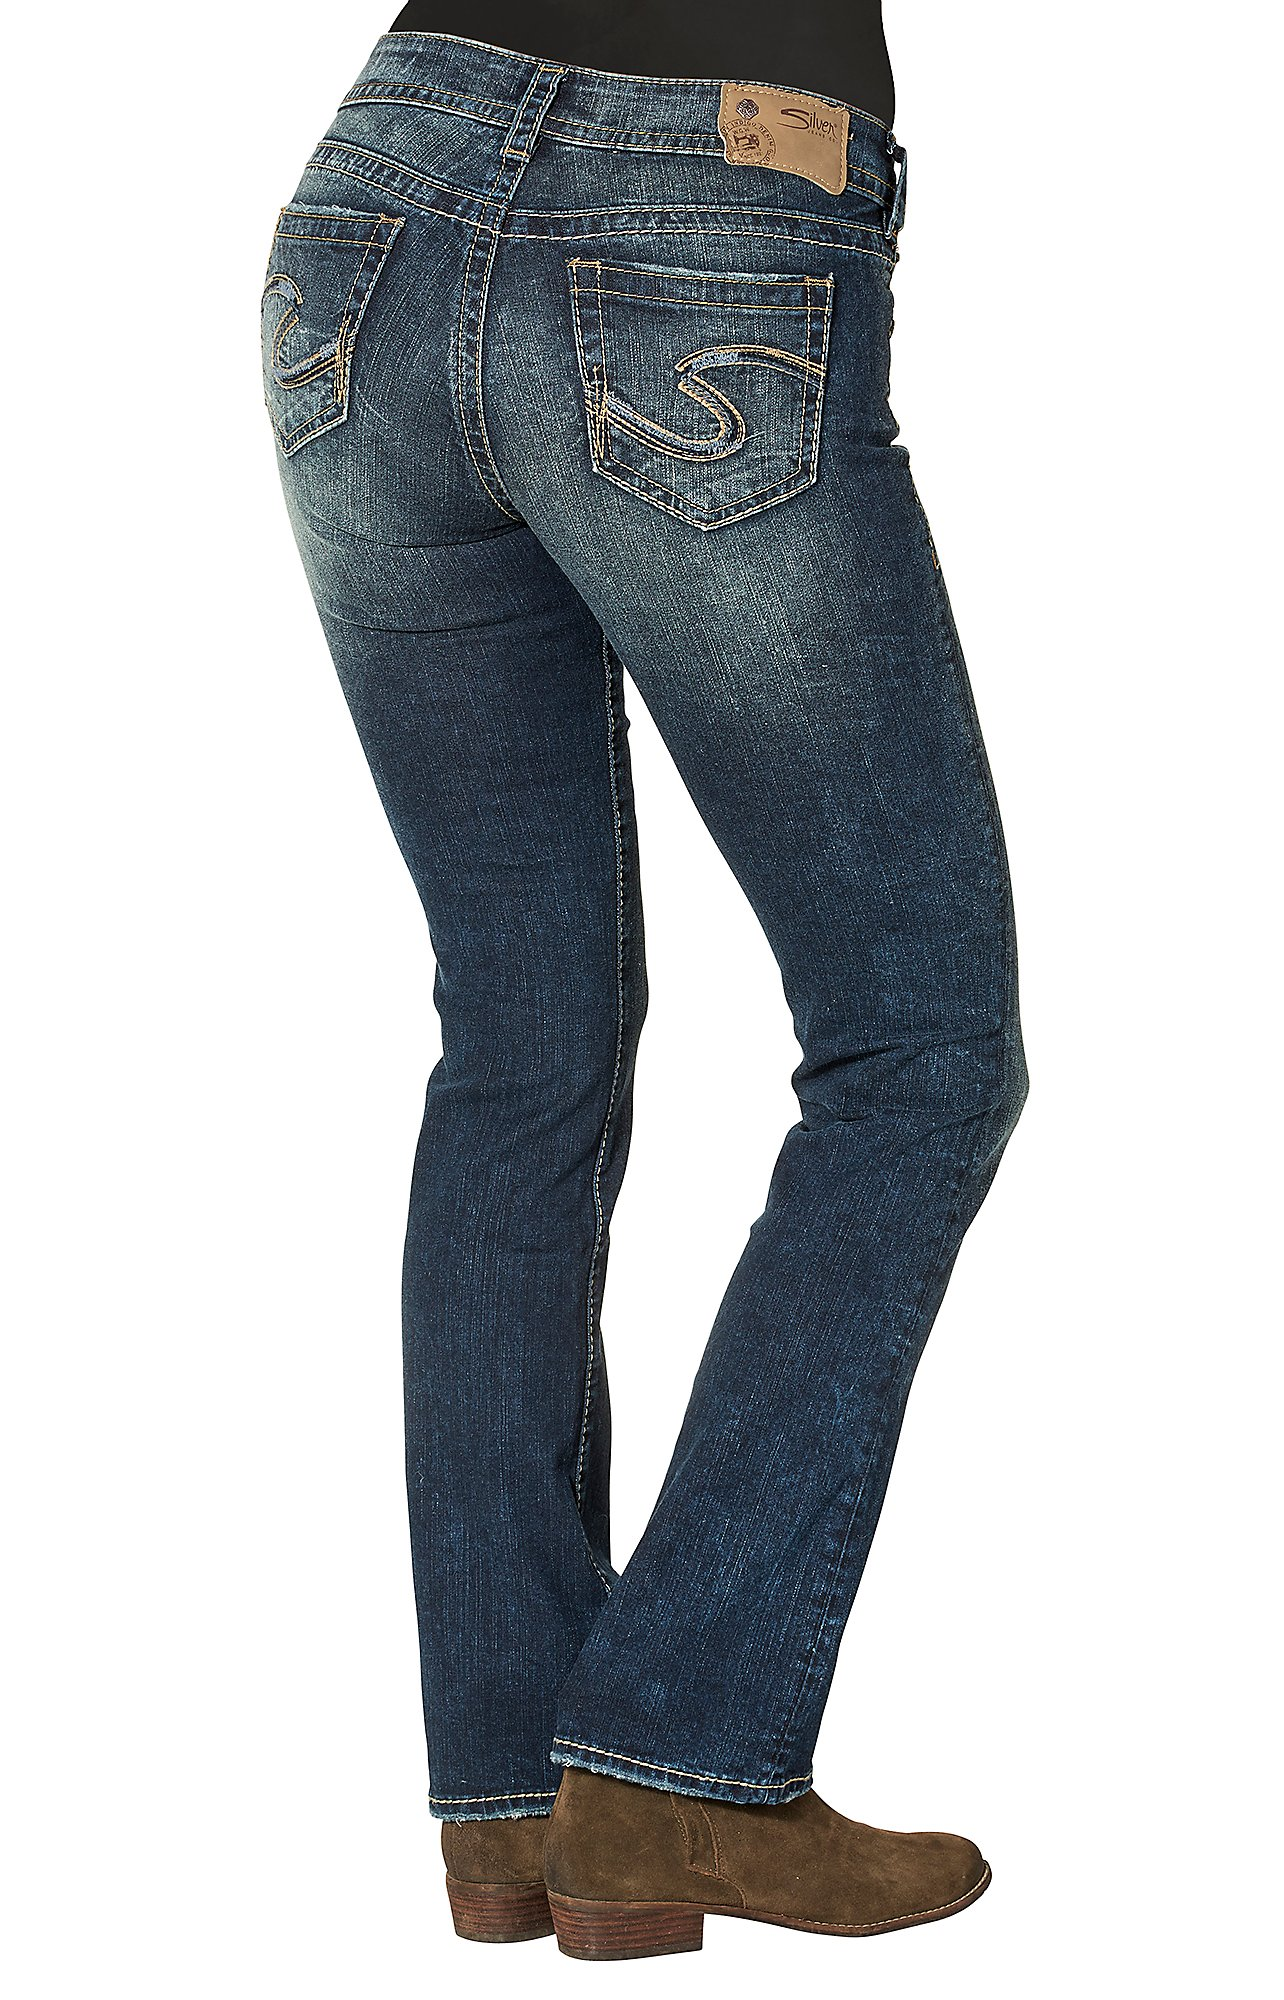 Shop Women&39s Silver Jeans | Free Shipping $50  | at Cavender&39s